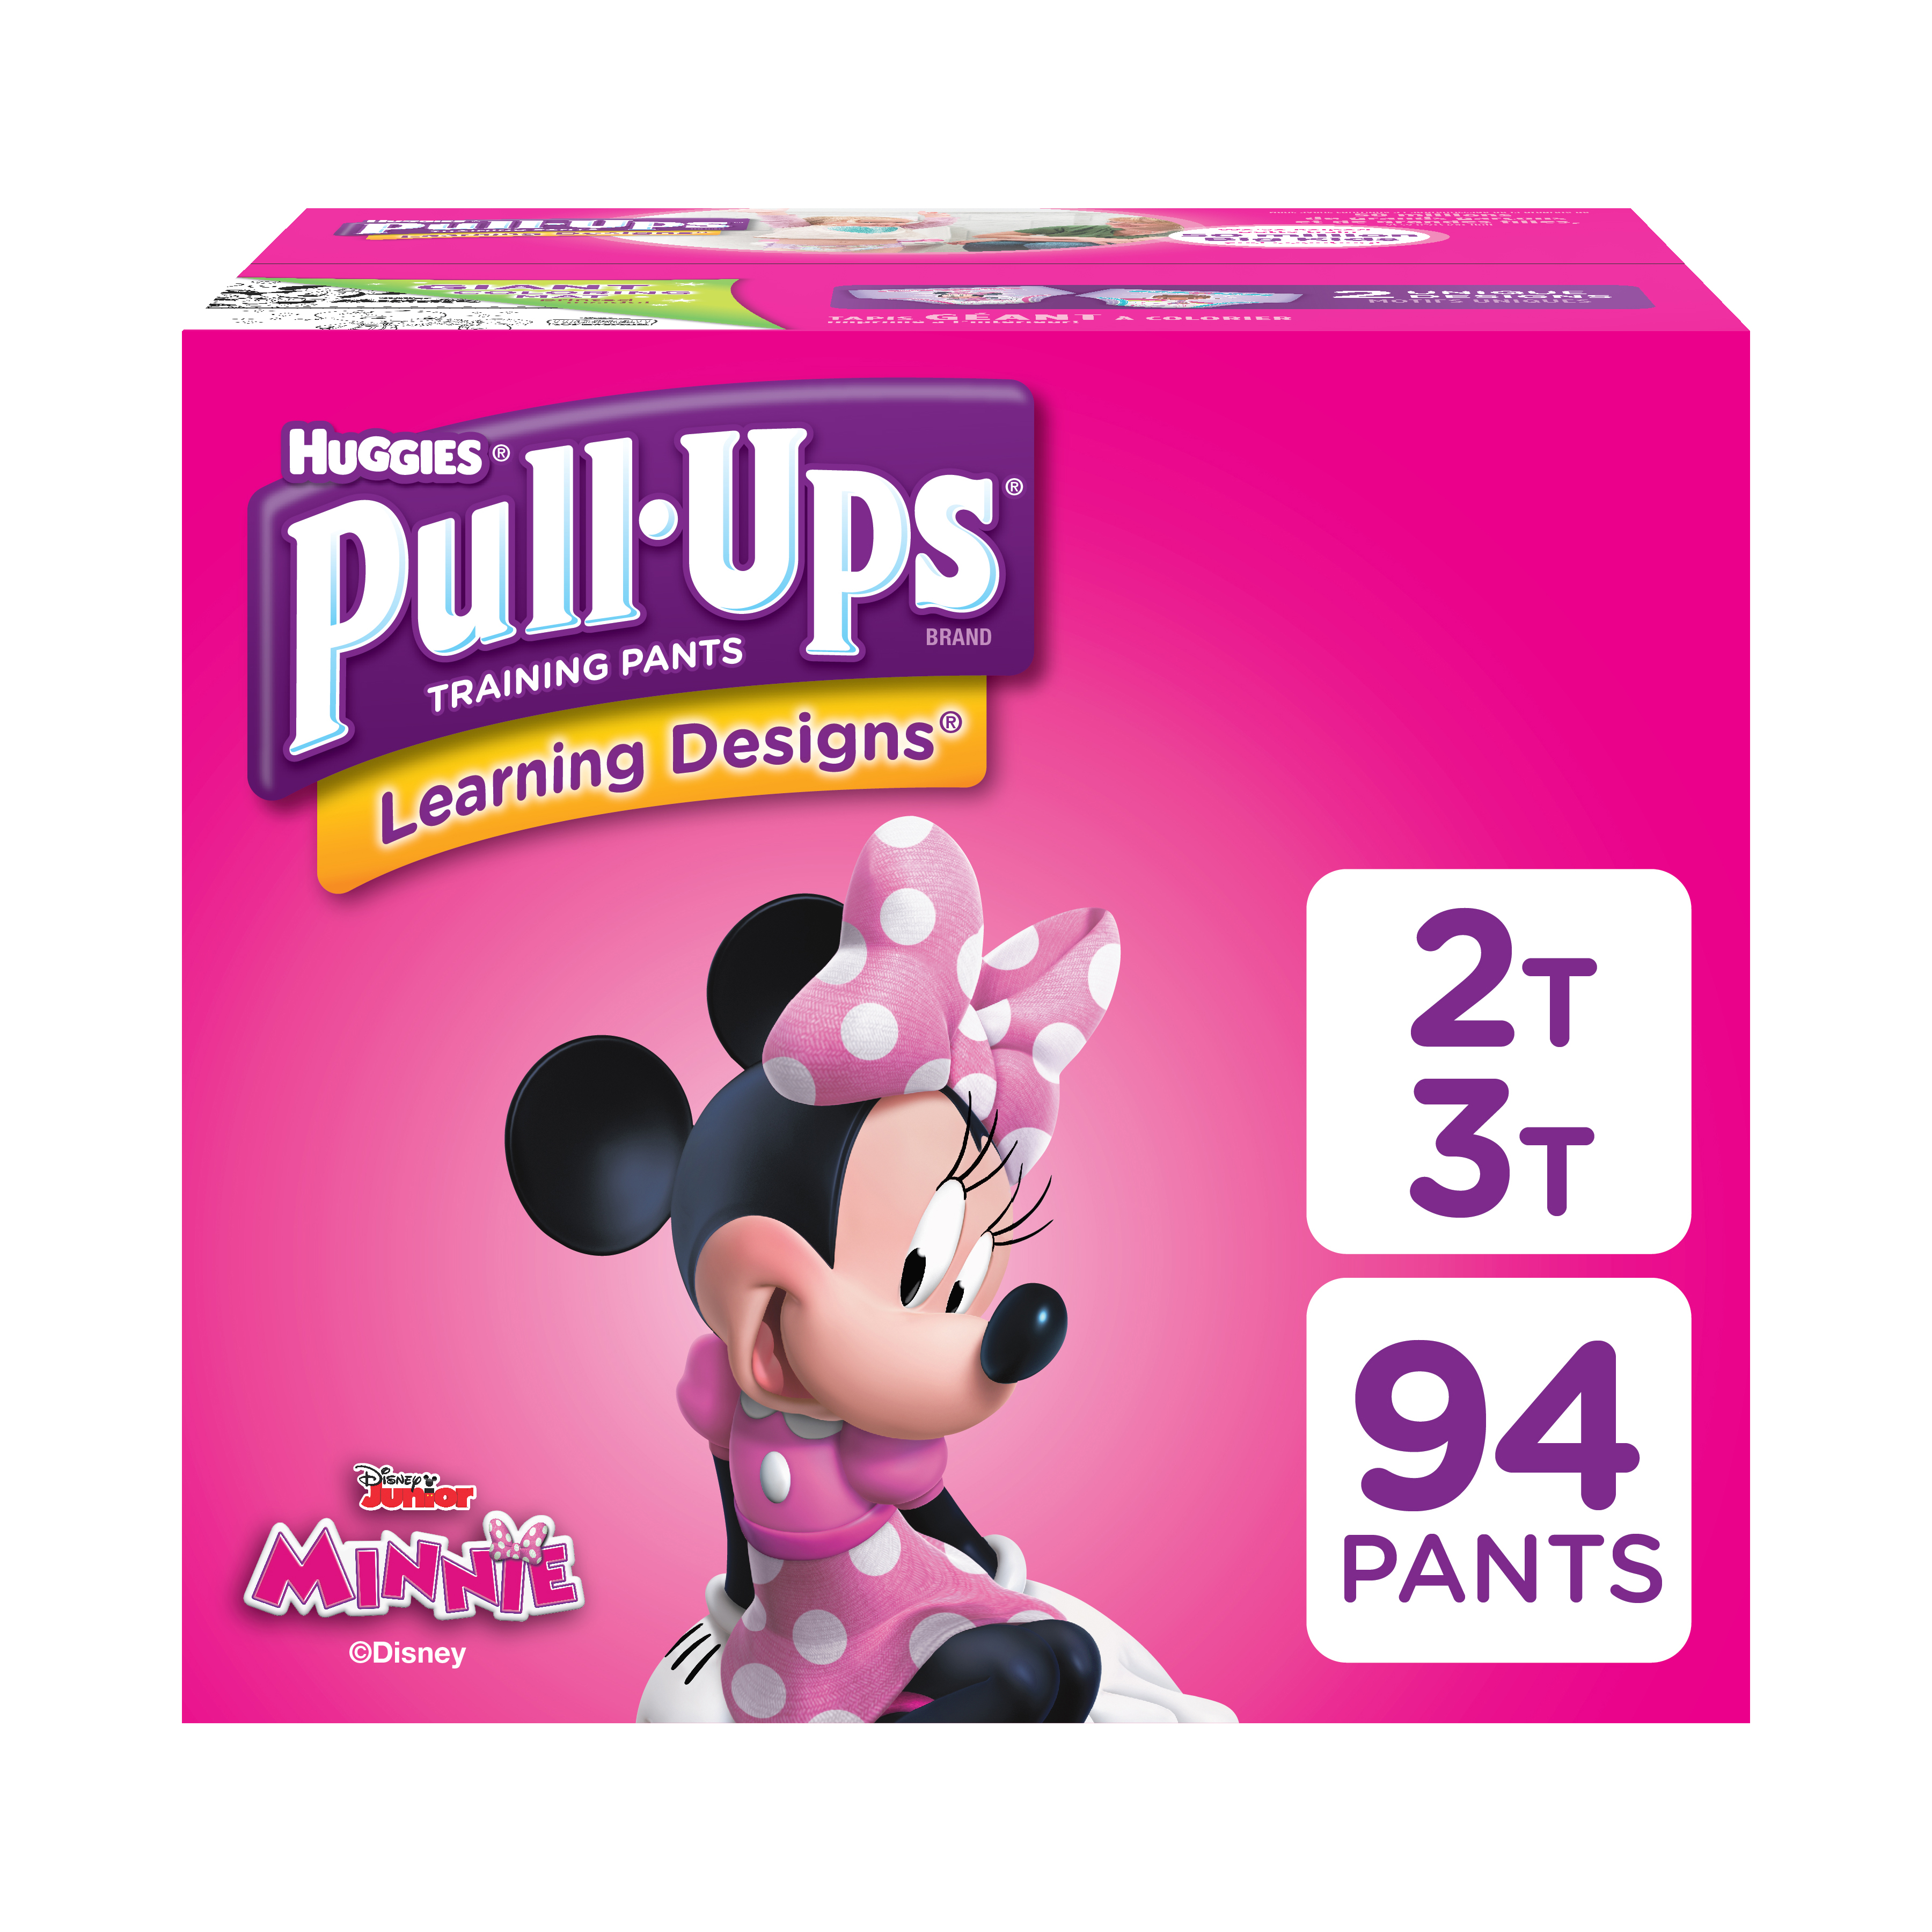 Pull-Ups Girls' Learning Designs Training Pants, Size 2T-3T, 94 Count